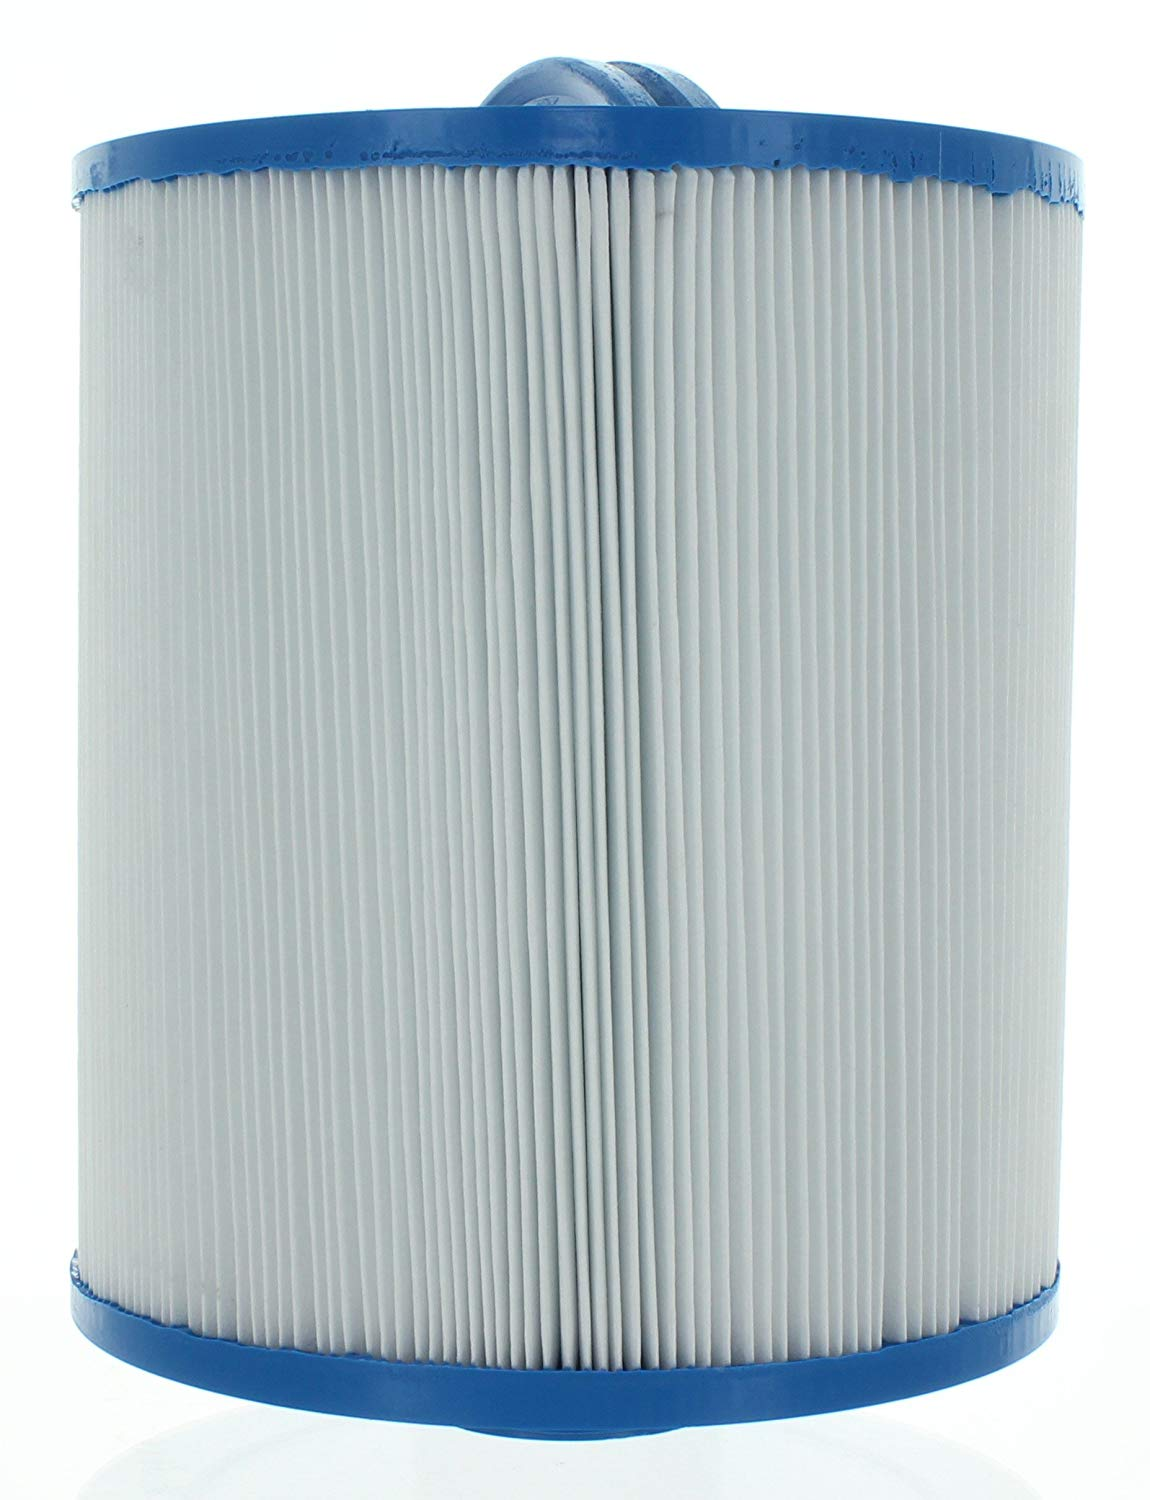 Guardian Spa Filter Replaces Pleatco PMA25-M PMA25 Cartridge for Outer MICROBAN Antimicrobial for Nested System PMA-PROPAK2 1 Cartridge Master spas